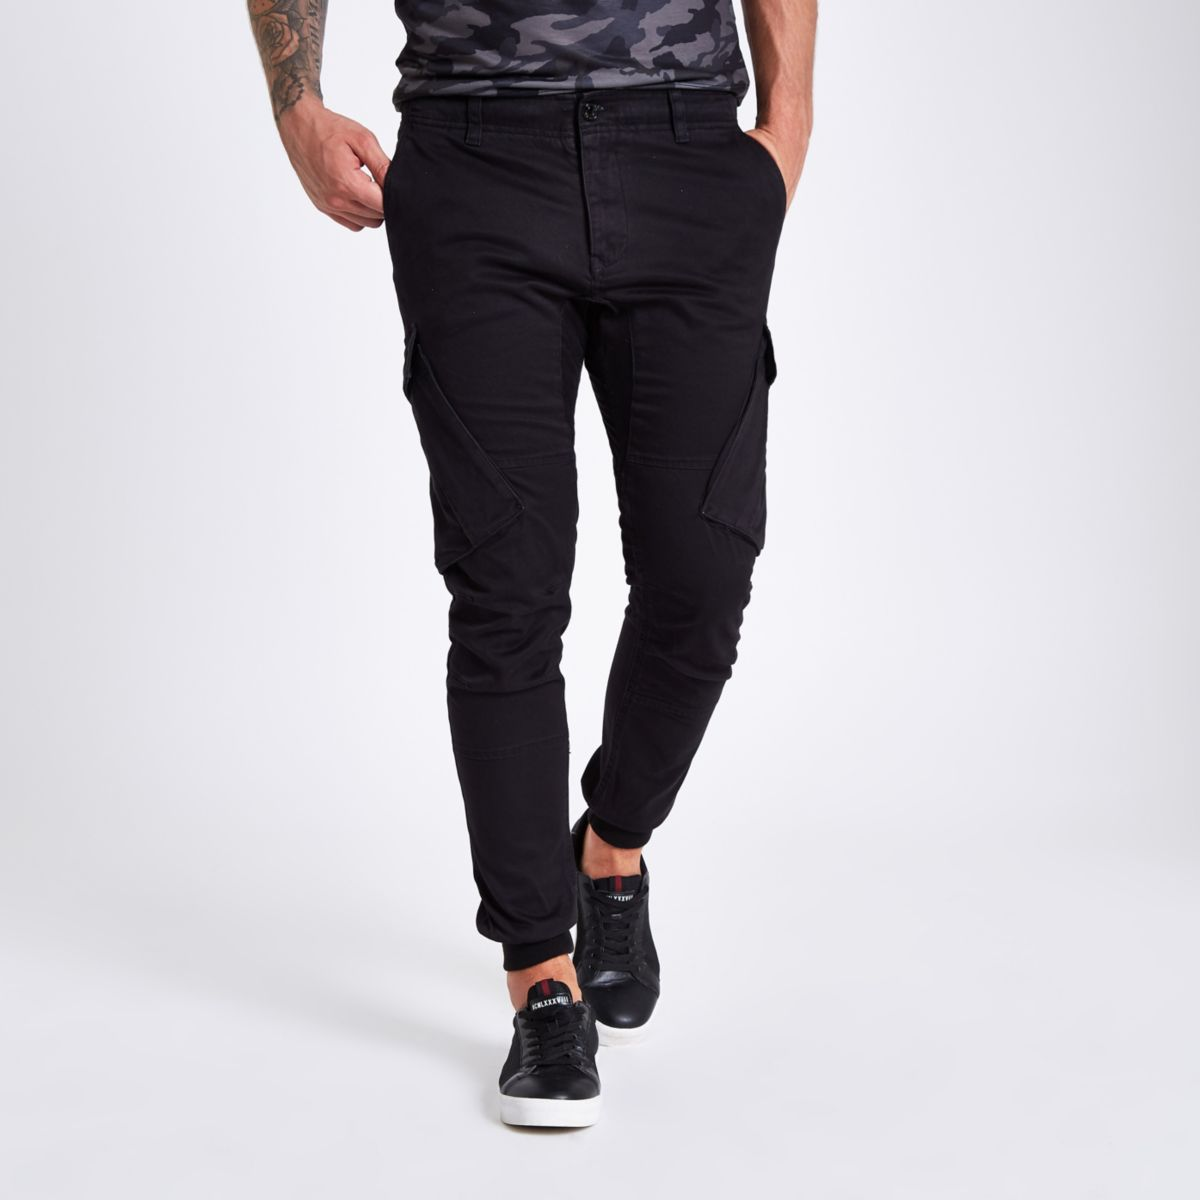 Black tapered cargo pants